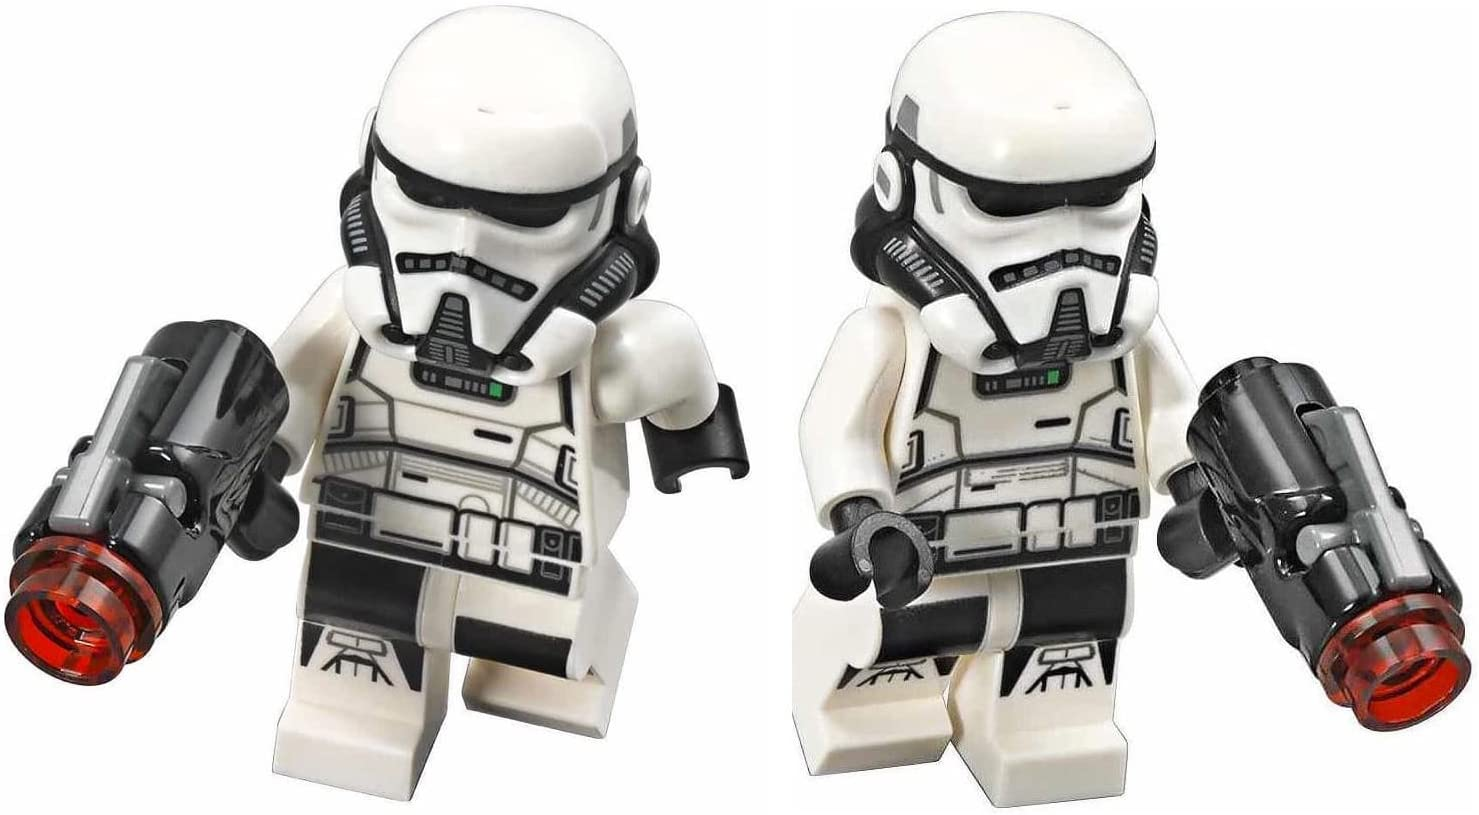 LEGO Solo: A Star Wars Story Lot of 2 Minifigures - Imperial Patrol Troopers (75207)